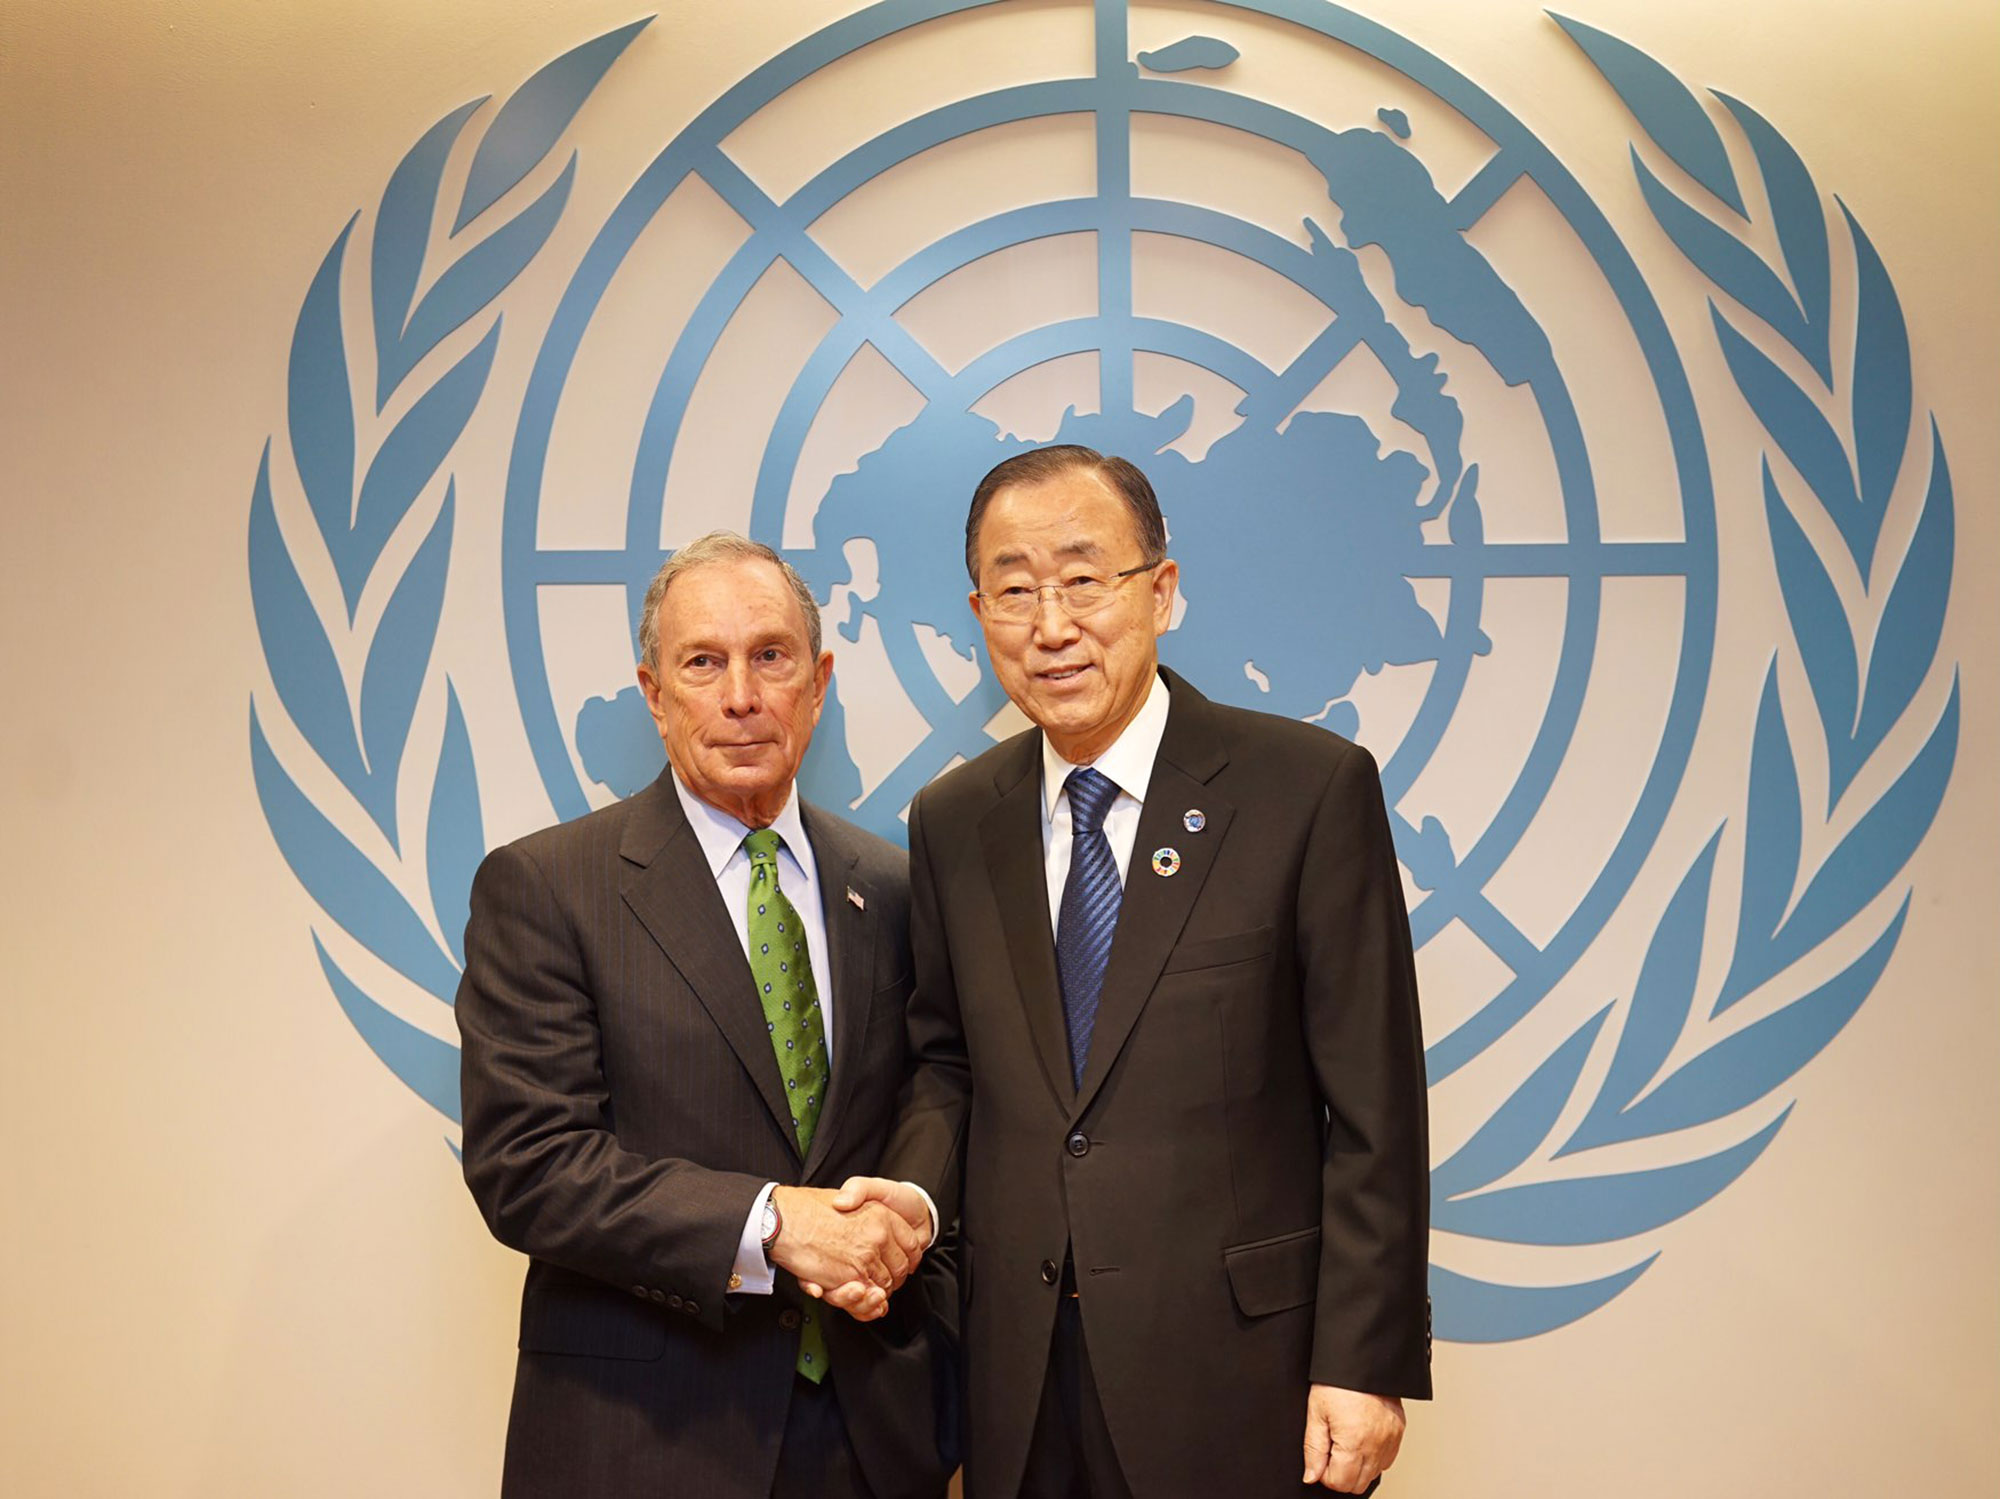 Mike Bloomberg and UN Secretary General Ban Ki-moon at the Investor's Summit on Climate Risk